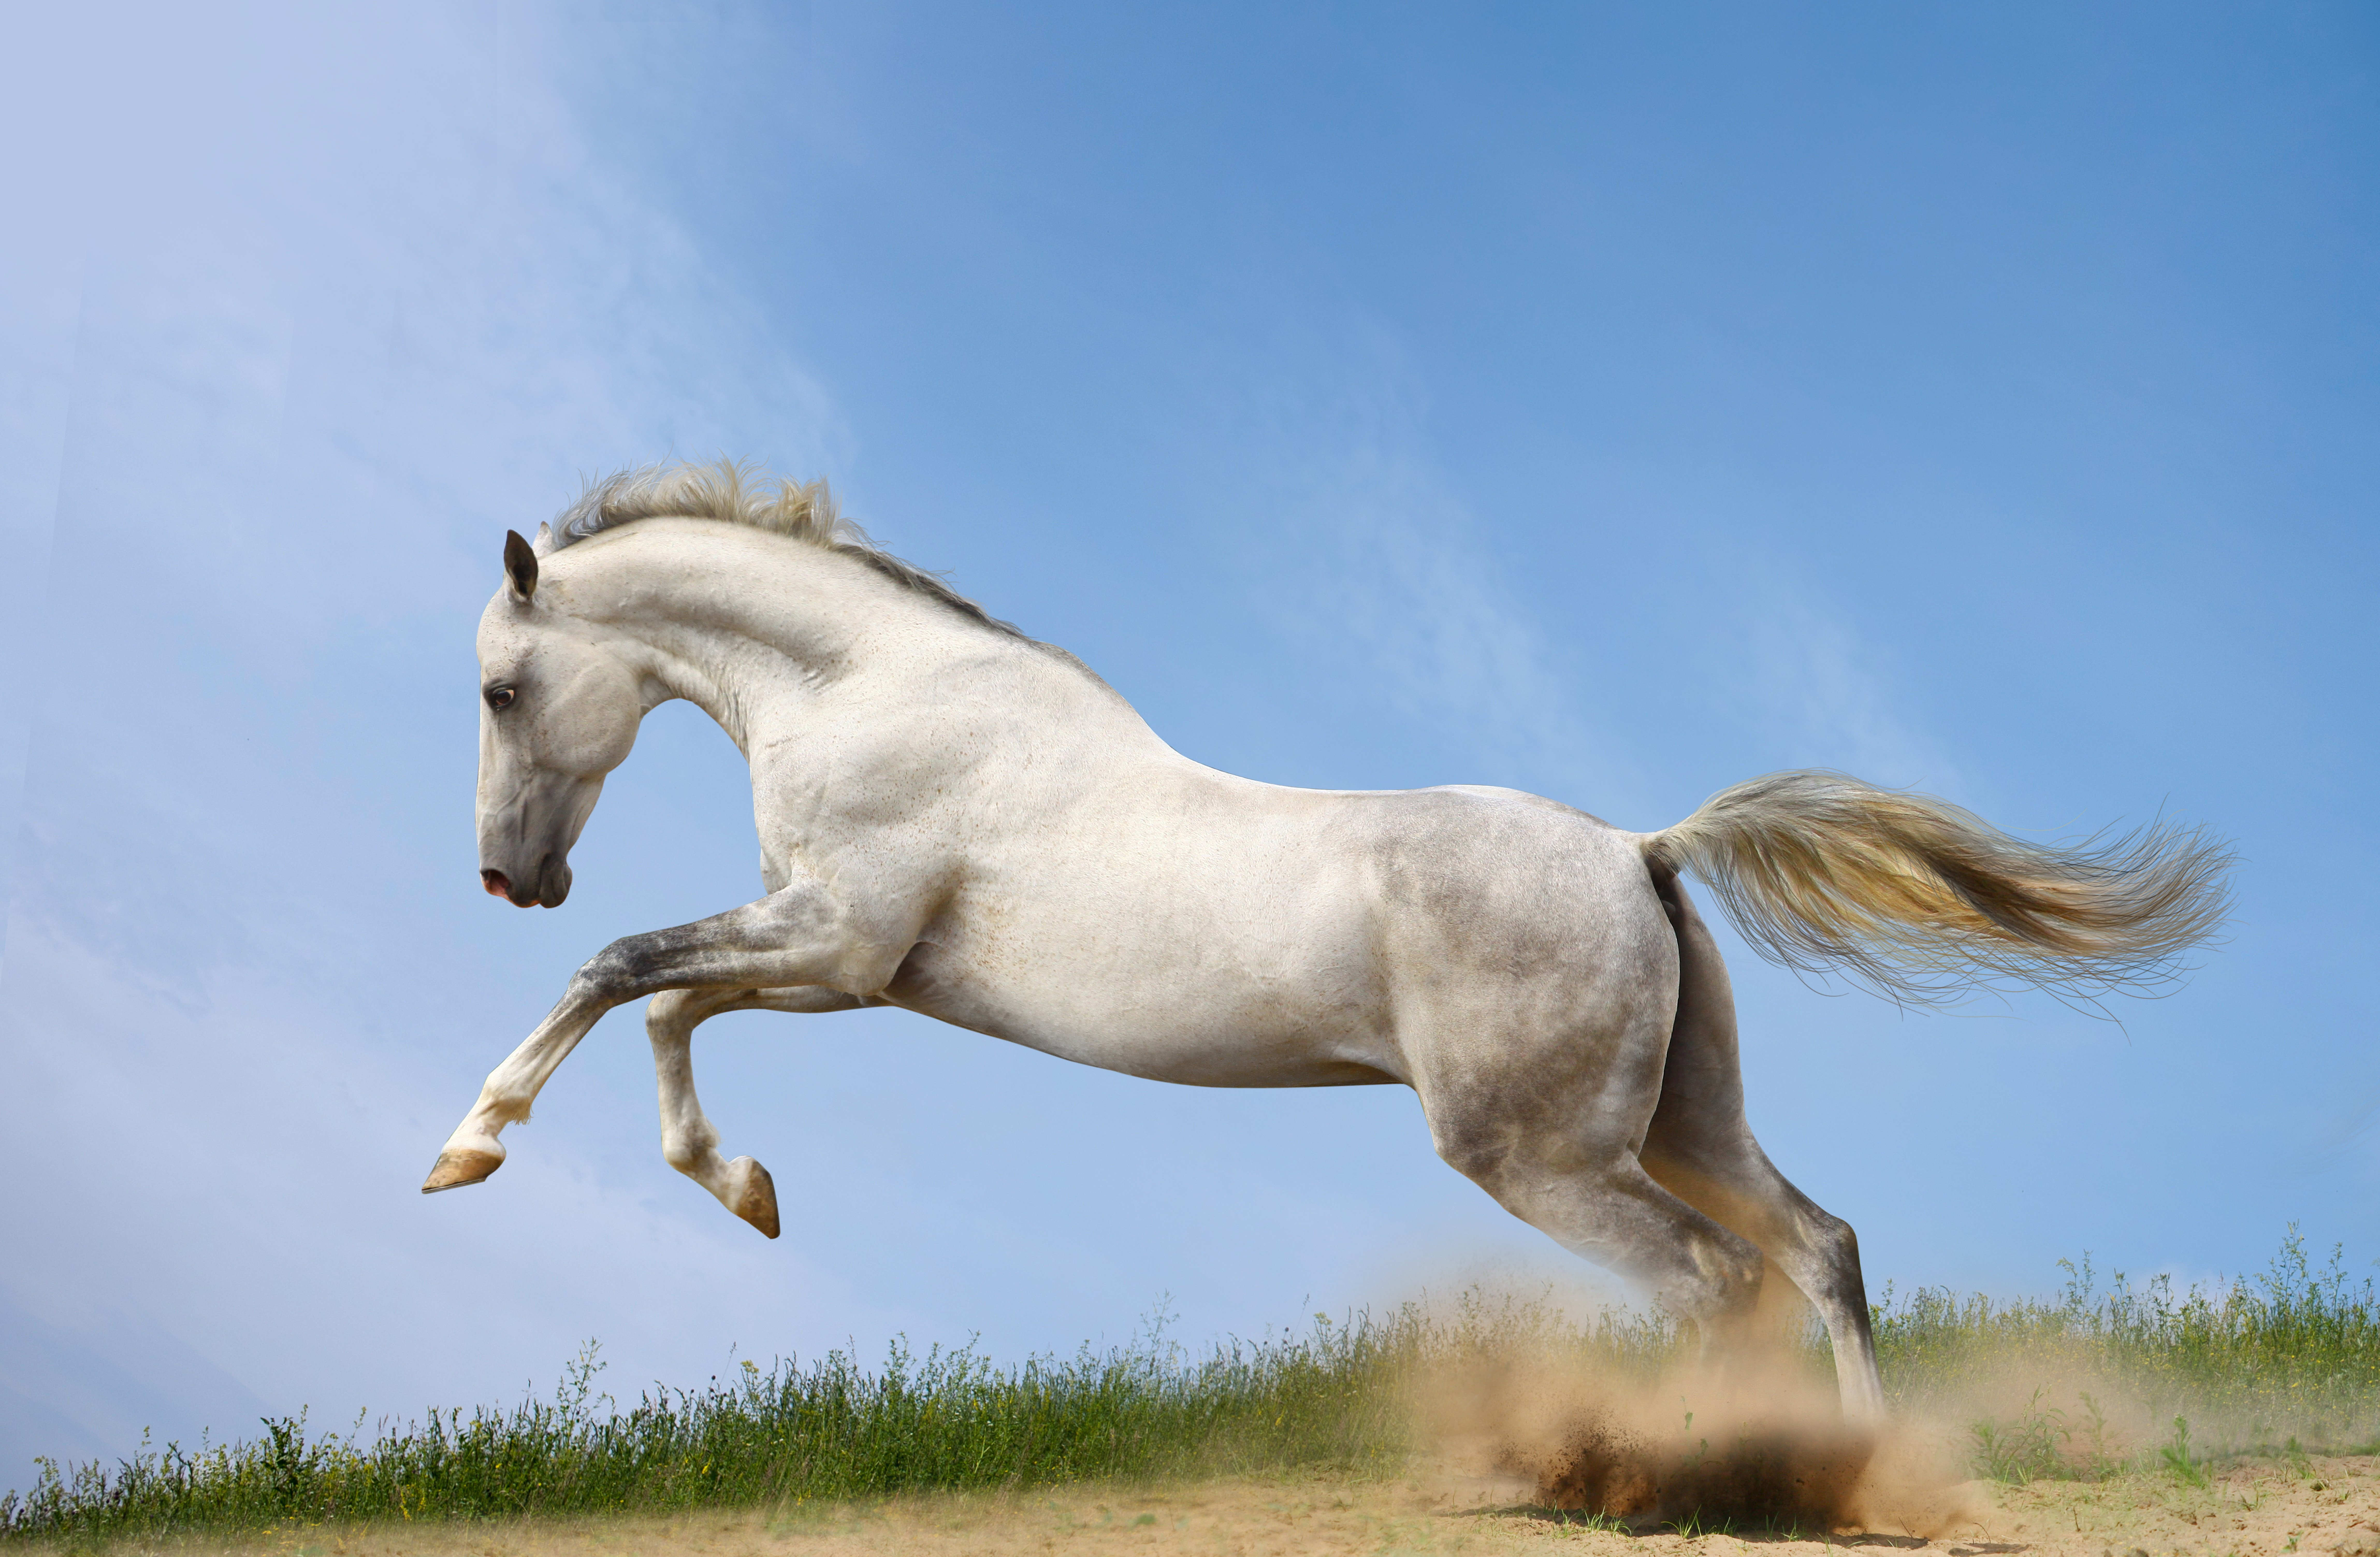 Horses Run Animals horse wallpaper | 9192x6012 | 620722 ...